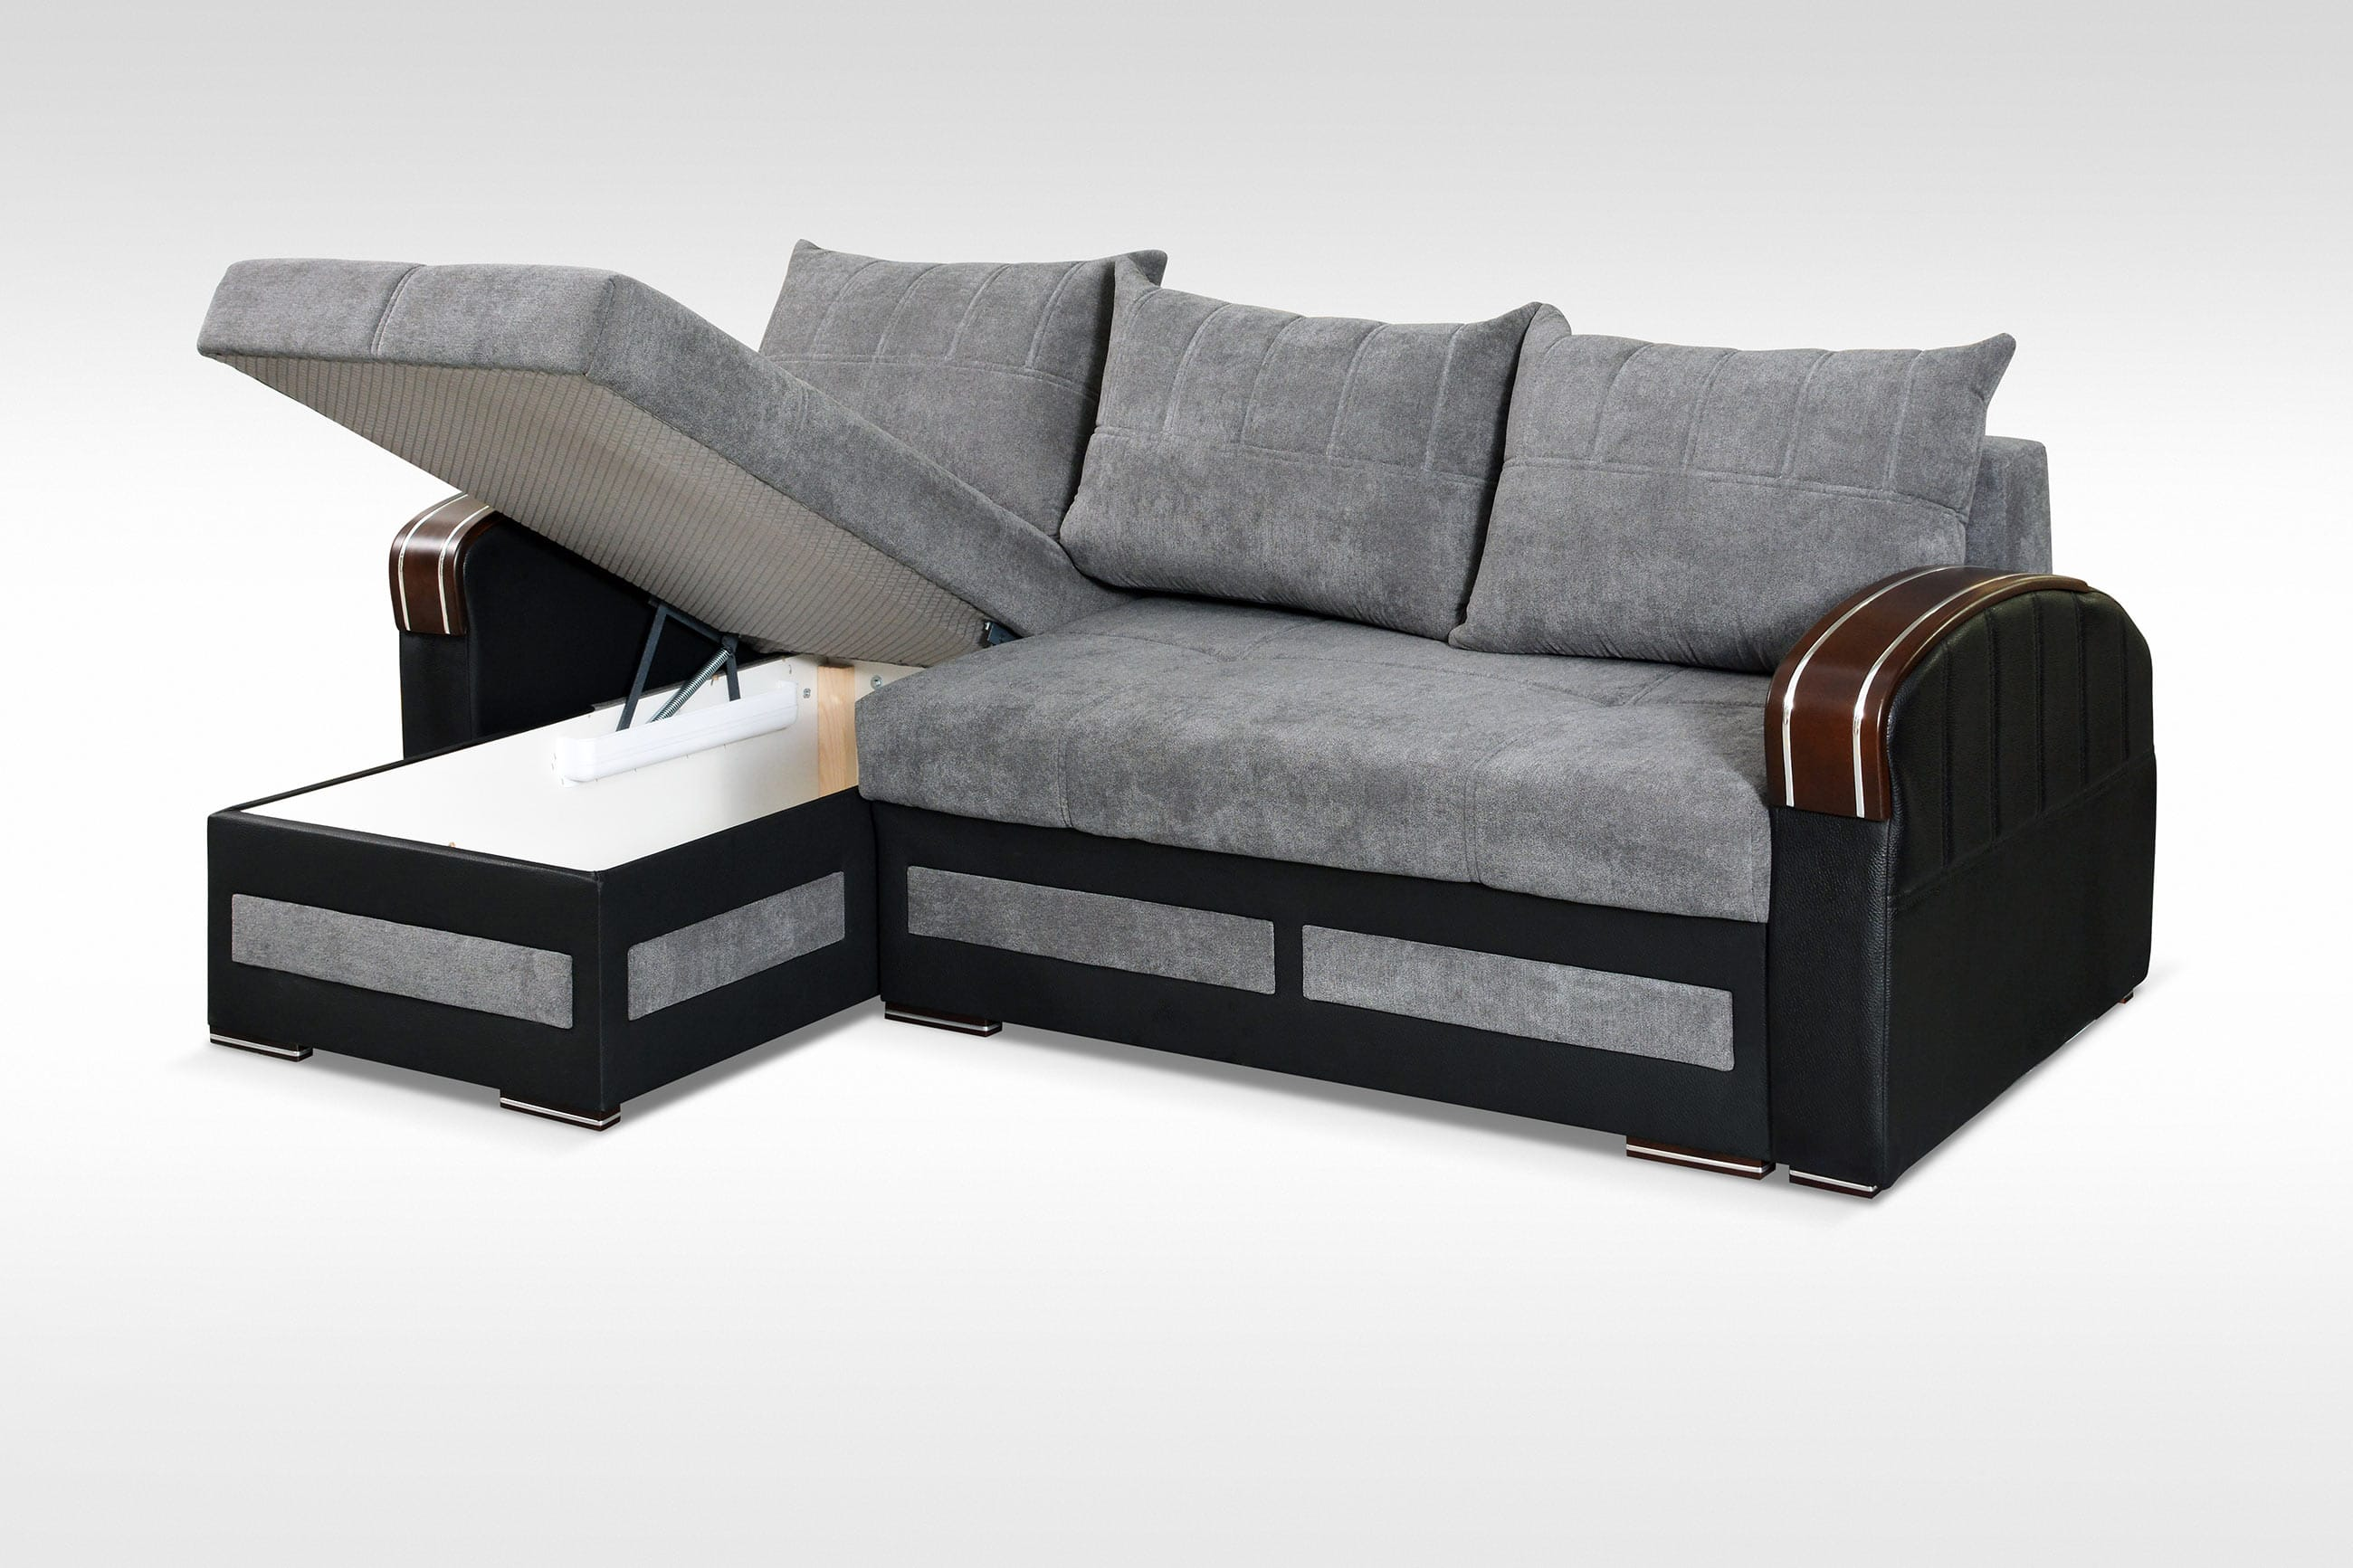 Tommy Gray Sectional Sofa Sleeper by Skyler Designs